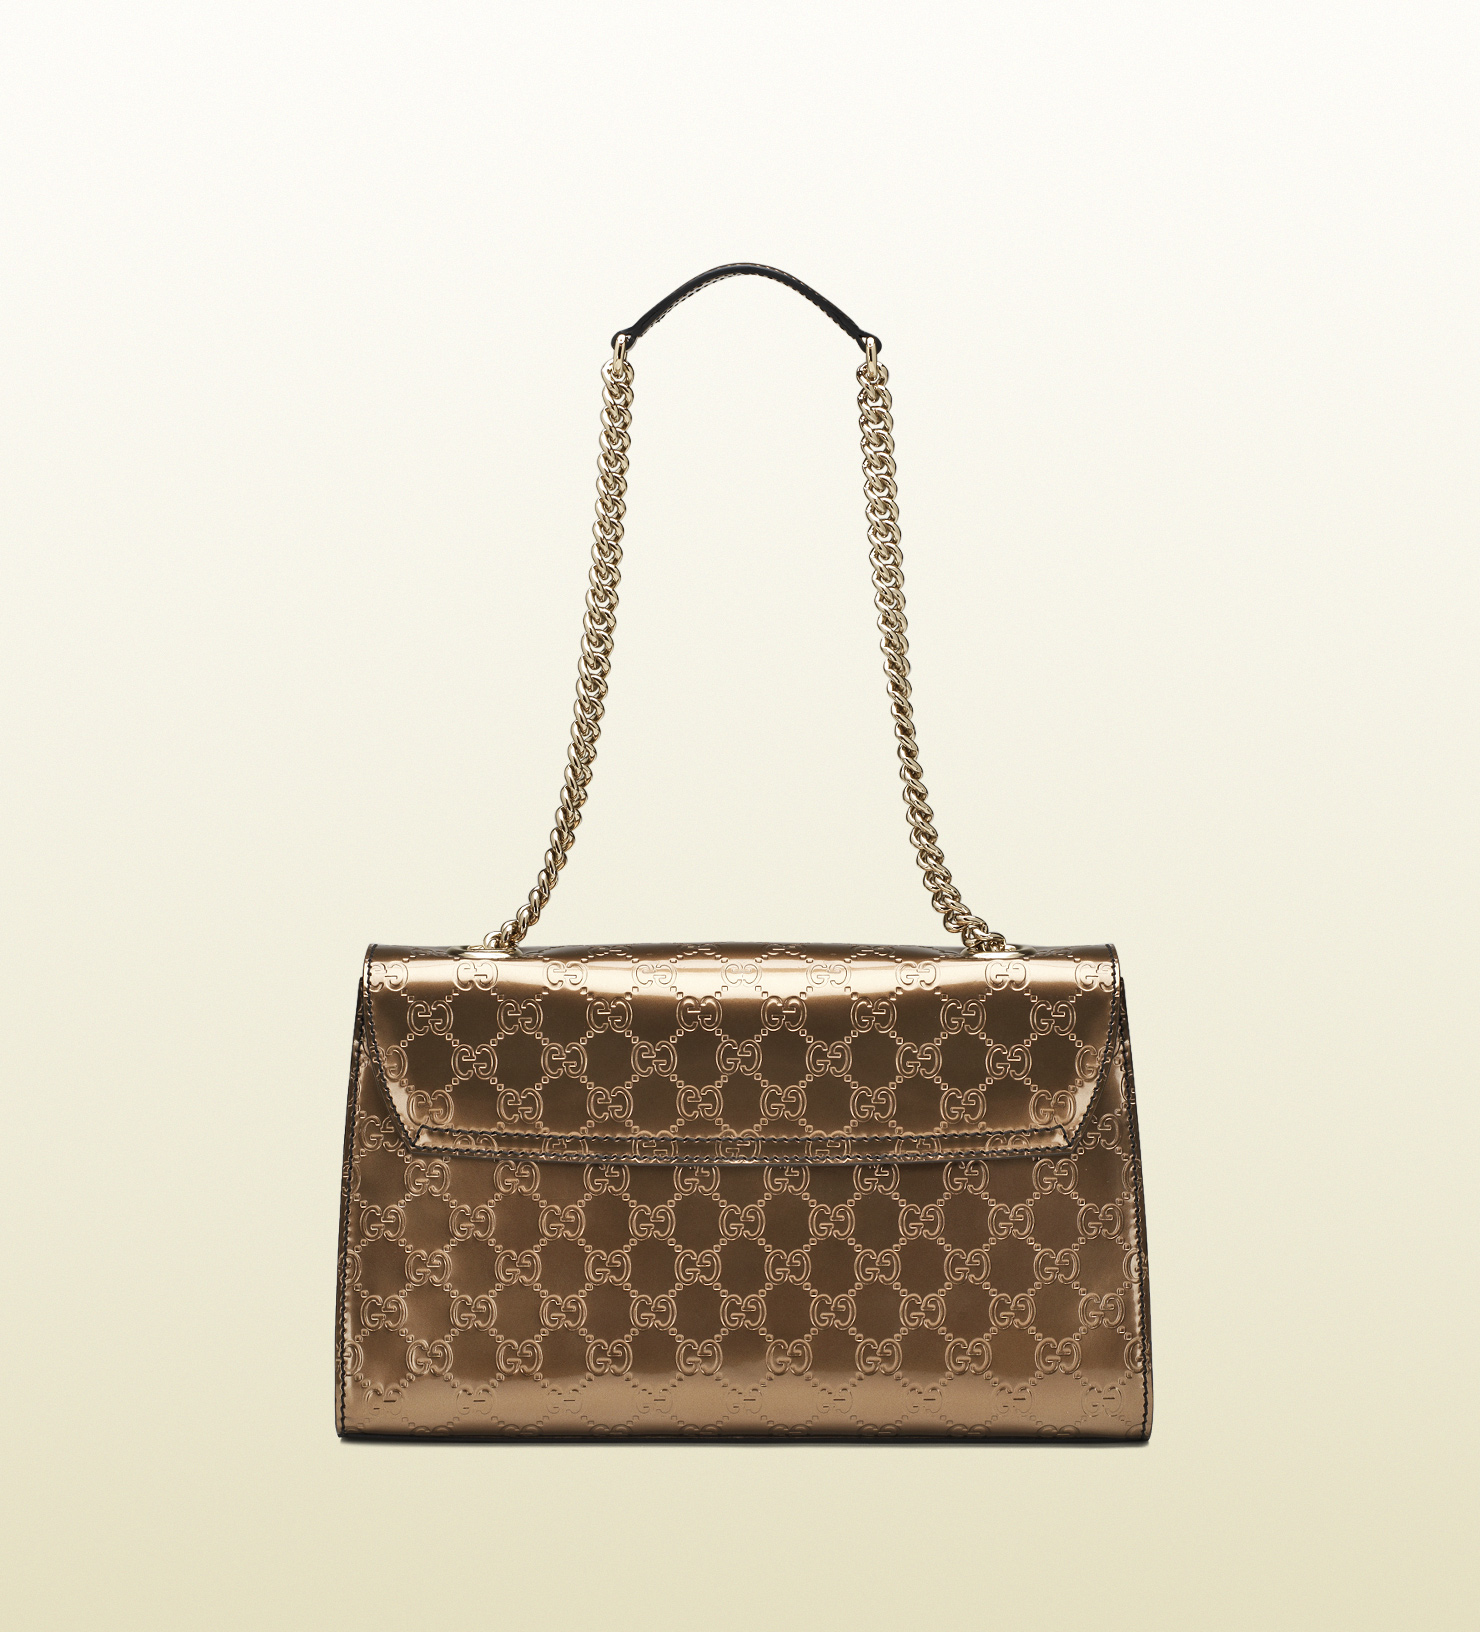 6ca57c07358 Lyst gucci emily ssima leather chain shoulder bag in brown jpg 1480x1632  Straw shoulder bag www